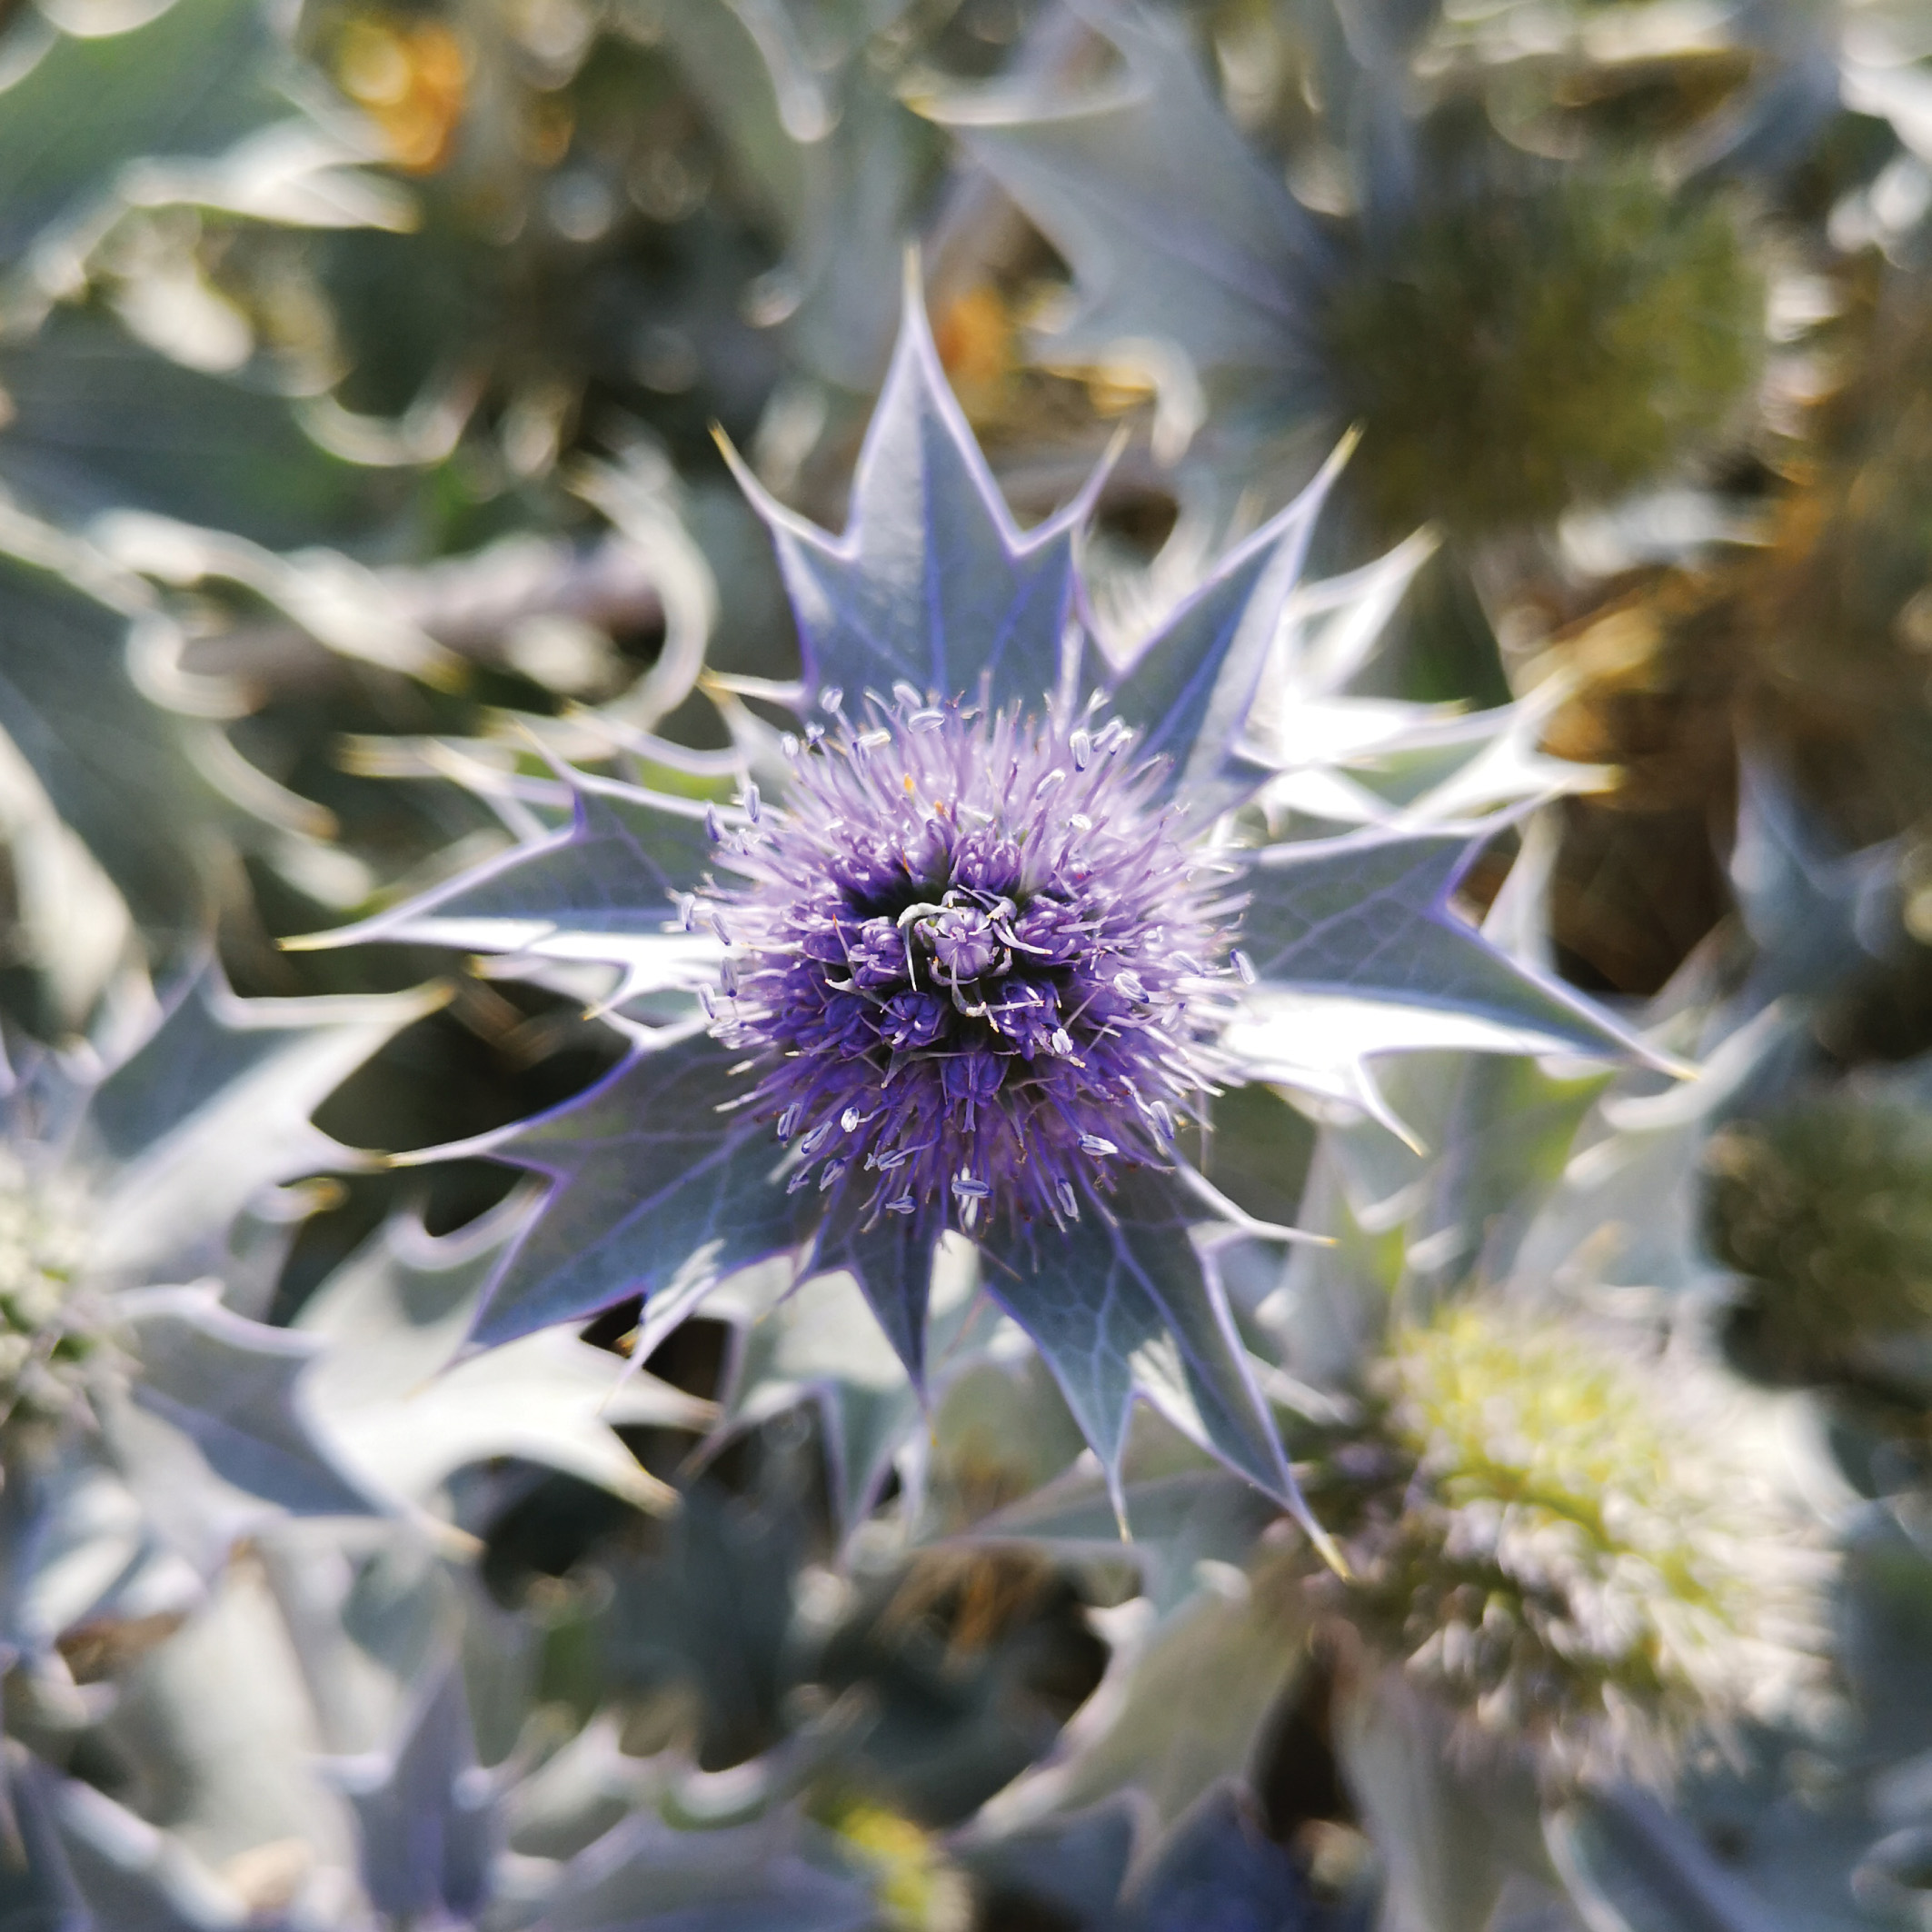 SEA HOLLY (eryngium maritimum)